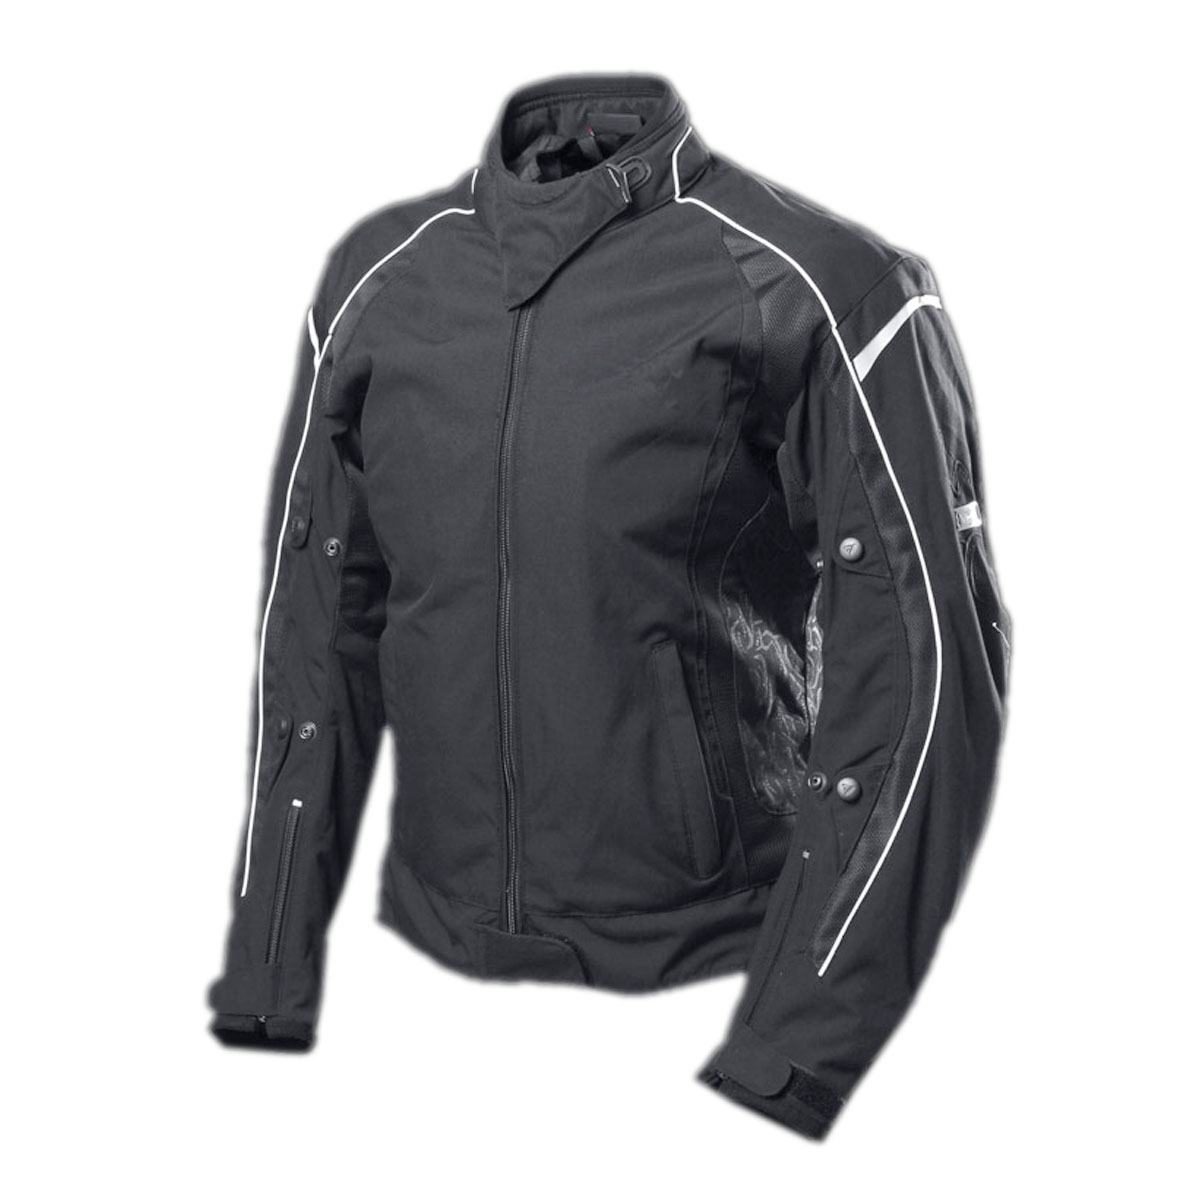 BLACK FEMALE CORDURA JACKET WITH WHITE LINES